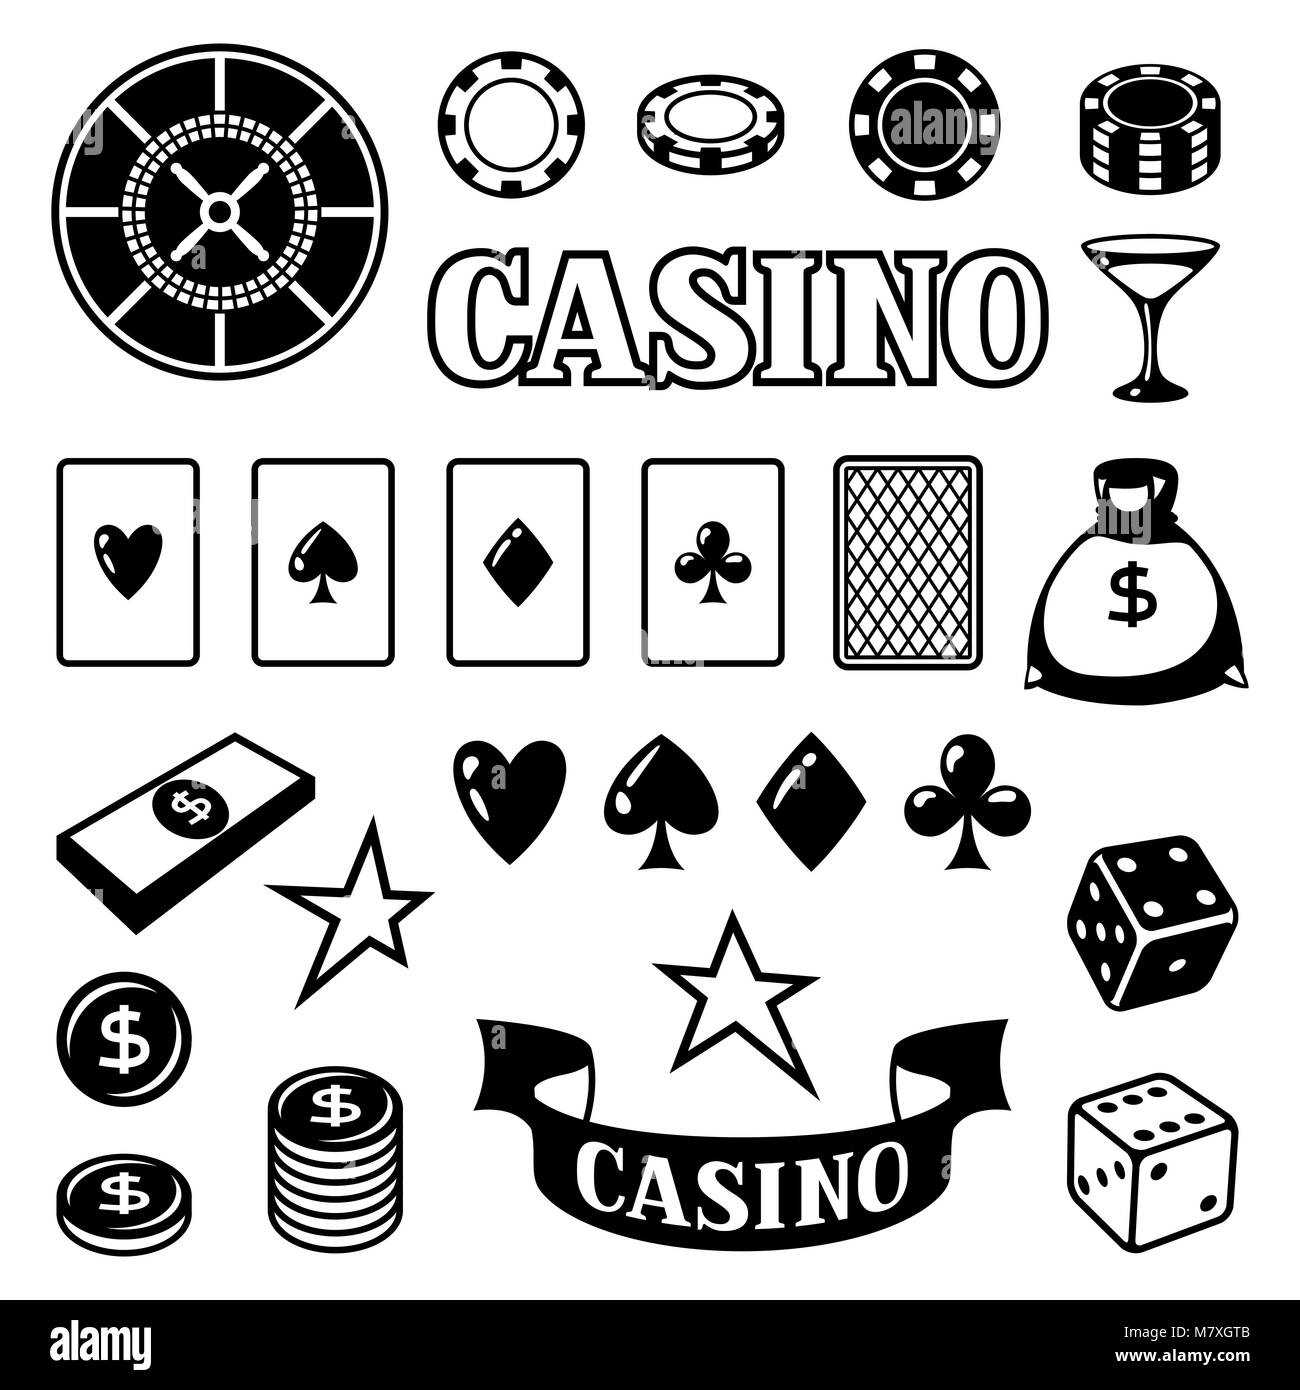 Set of casino gambling game objects and icons - Stock Image